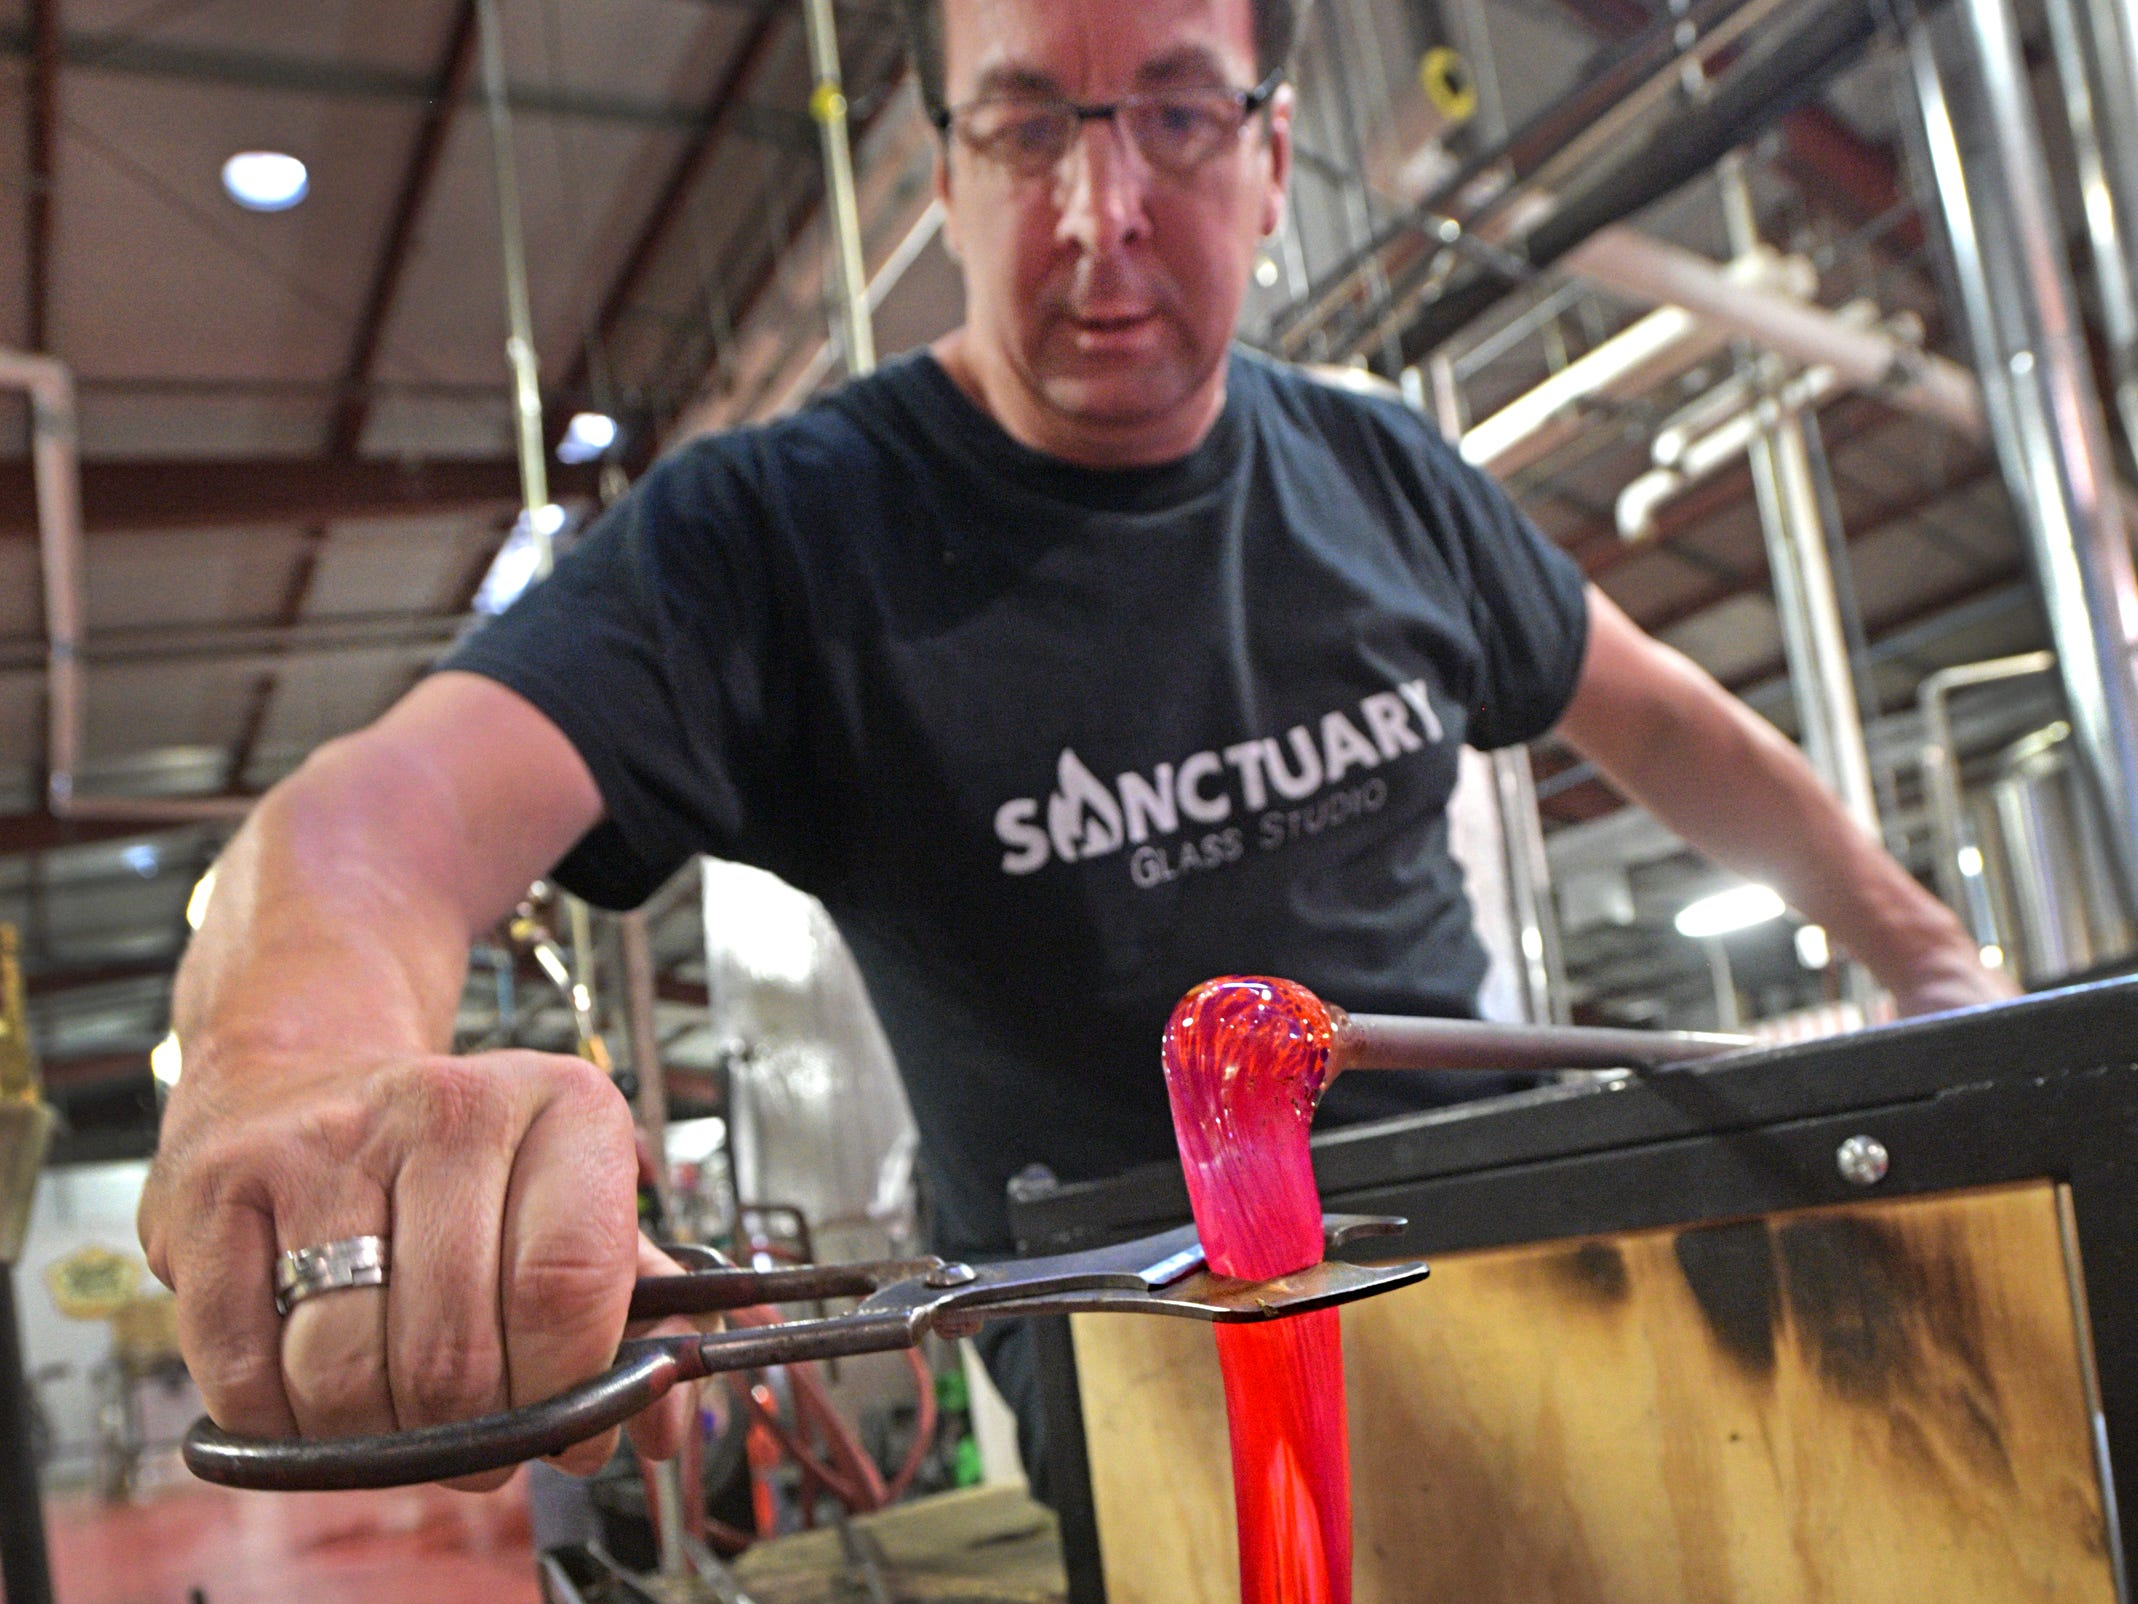 Sanctuary Glass Studio co-owner Eric Hess works glass into Art.